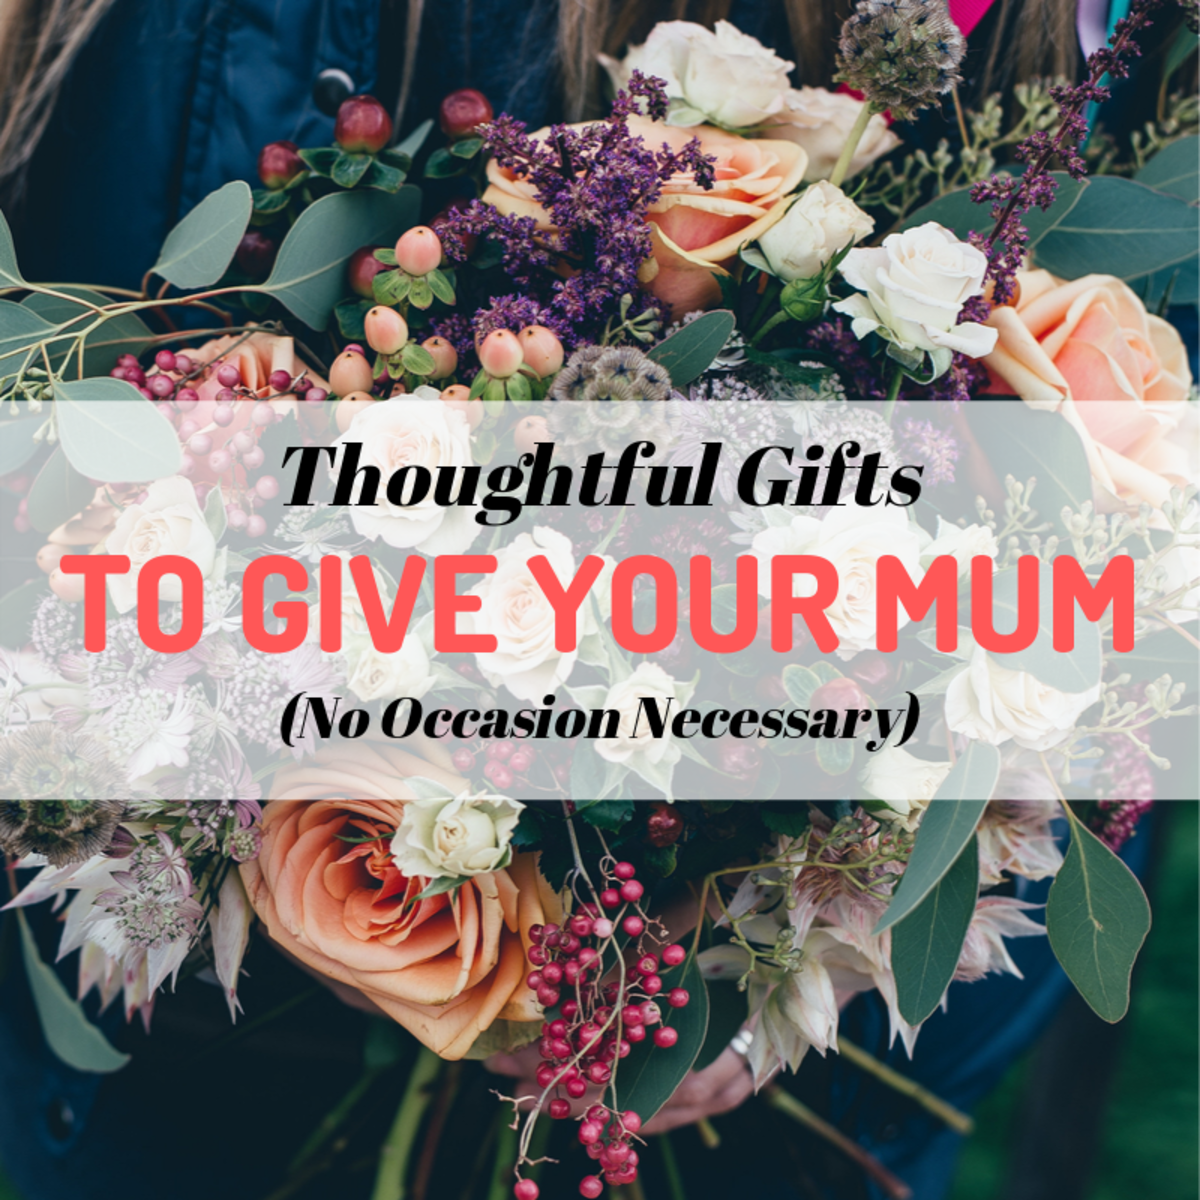 Here are some gift ideas that you can use anytime, not just on special occasions. Your mum deserves it!